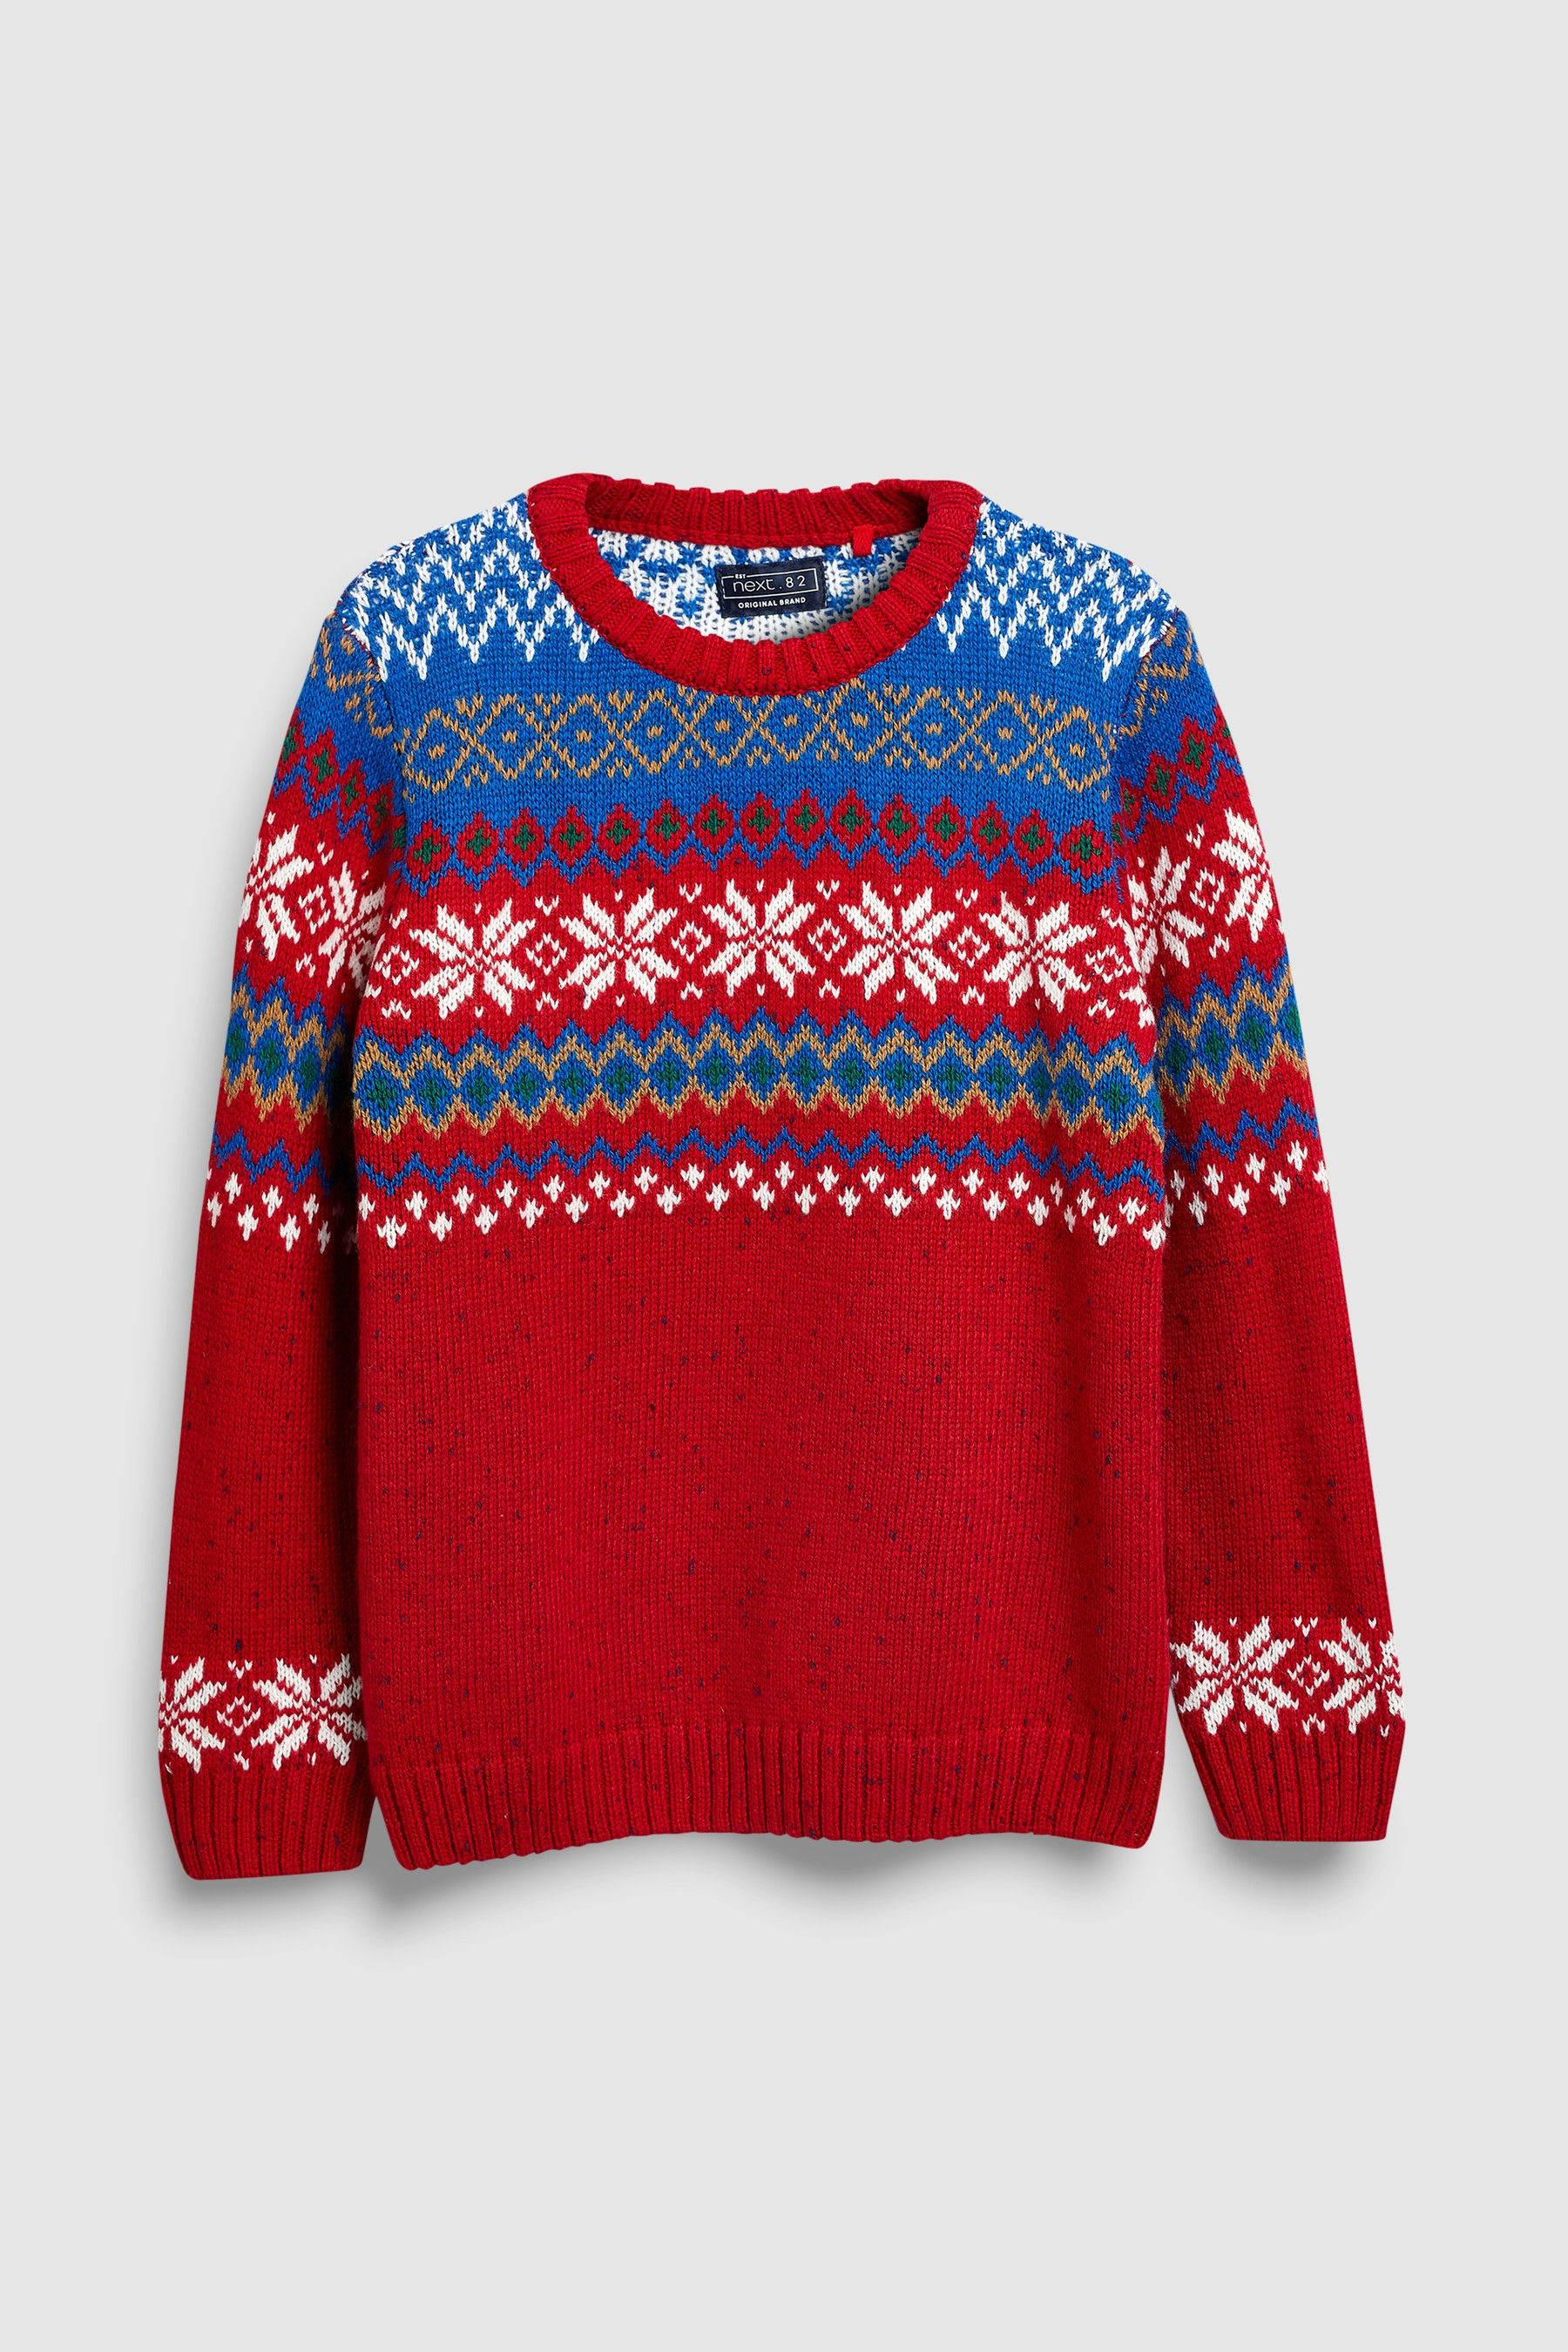 5840d5ccc70c Boys Next Red Fairisle Pattern Knitted Crew (3-16yrs) - Red ...